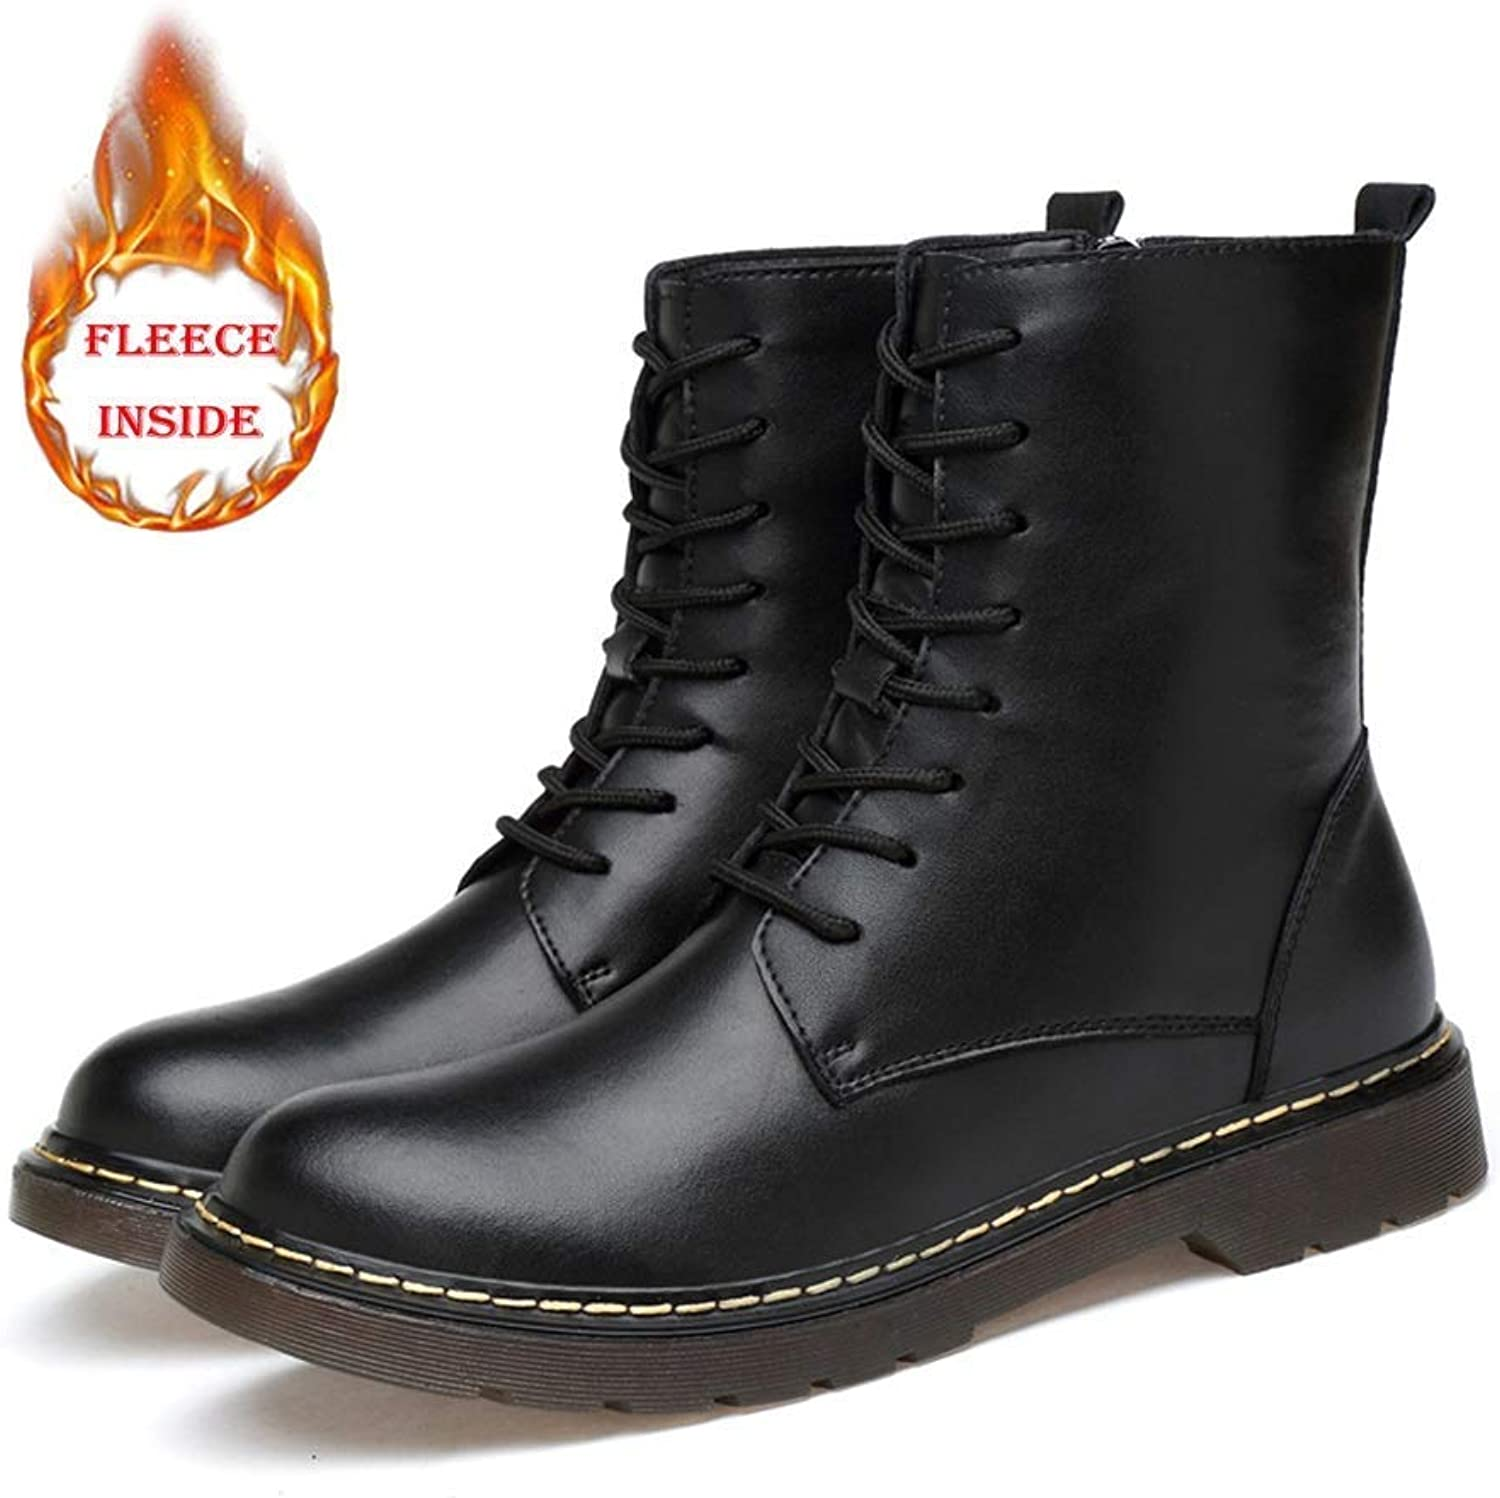 Men and Women Ankle Boots Casual Fashion Zipper and Fleece Warm Martin Boots (Conventional Optional) (color  Warm Black, Size  43 EU) (color   Warm Black, Size   45 EU)